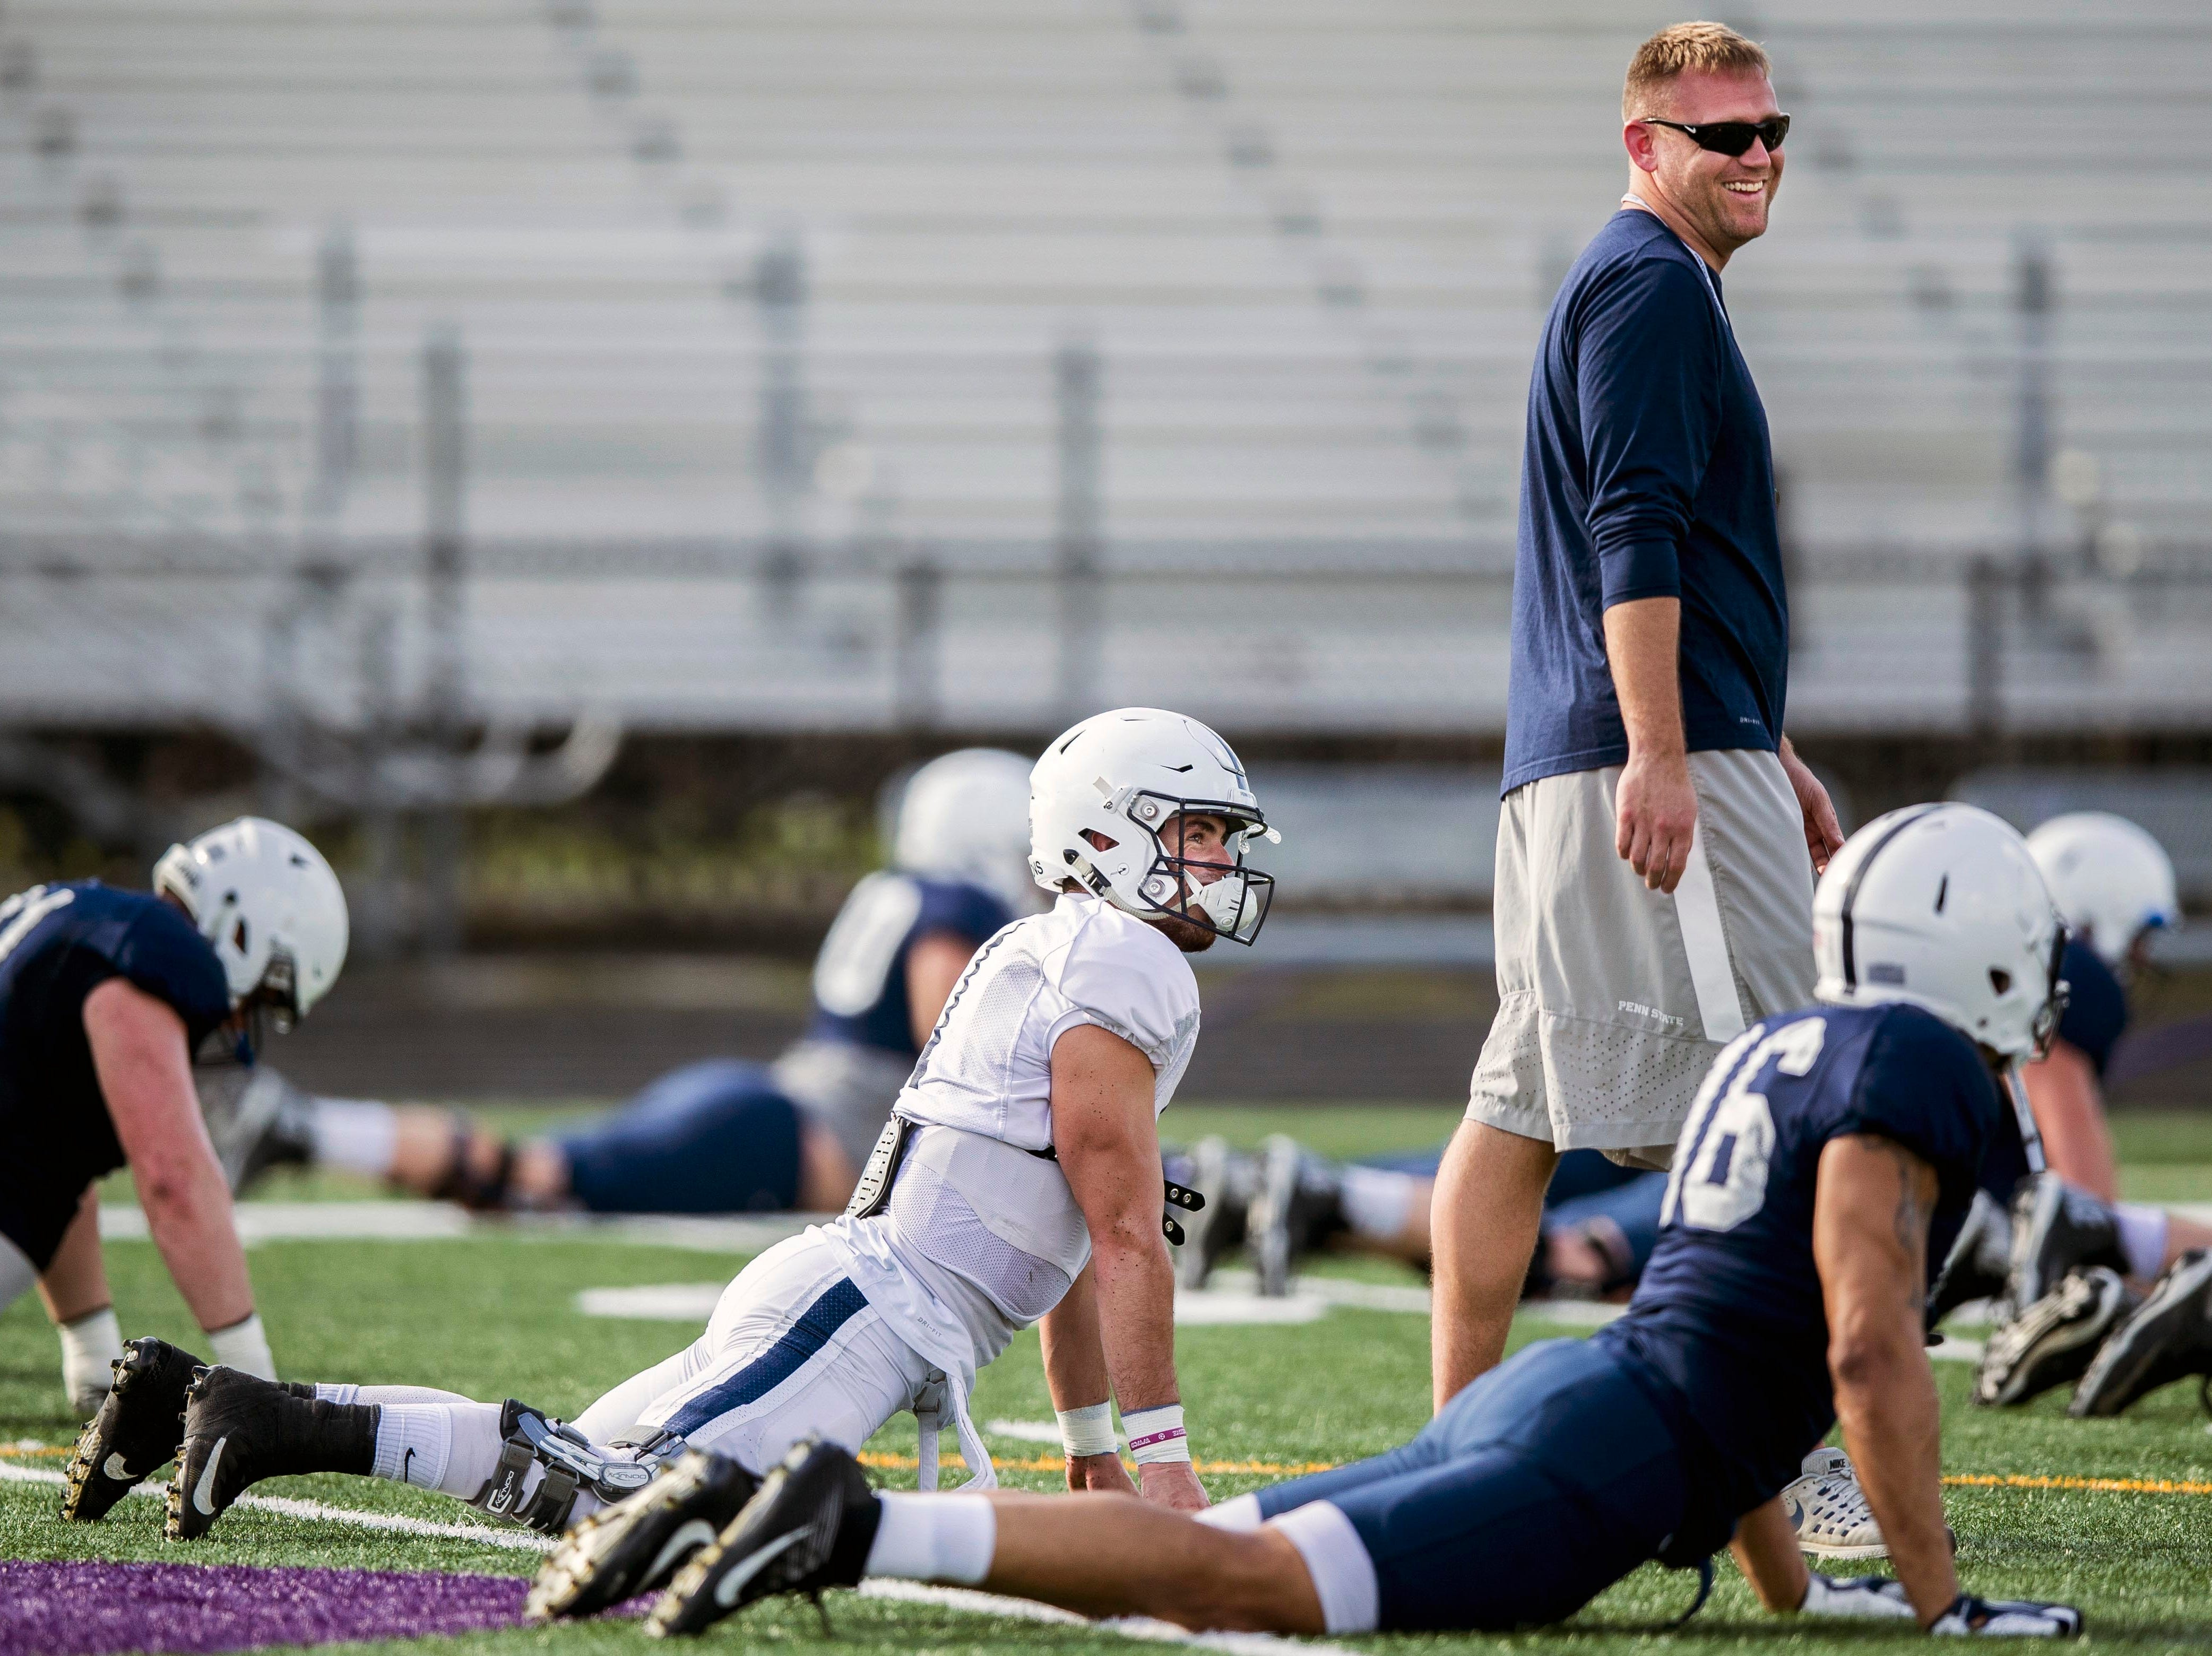 Penn State offensive coordinator Ricky Rahne jokes with quarterback Trace McSorley during practice for the Citrus Bowl, Sunday, Dec. 30, 2018 in Orlando, Fla. Penn State plays Kentucky in the Citrus Bowl on Tuesday, Jan. 1, 2019. (Joe Hermitt/The Patriot-News via AP)